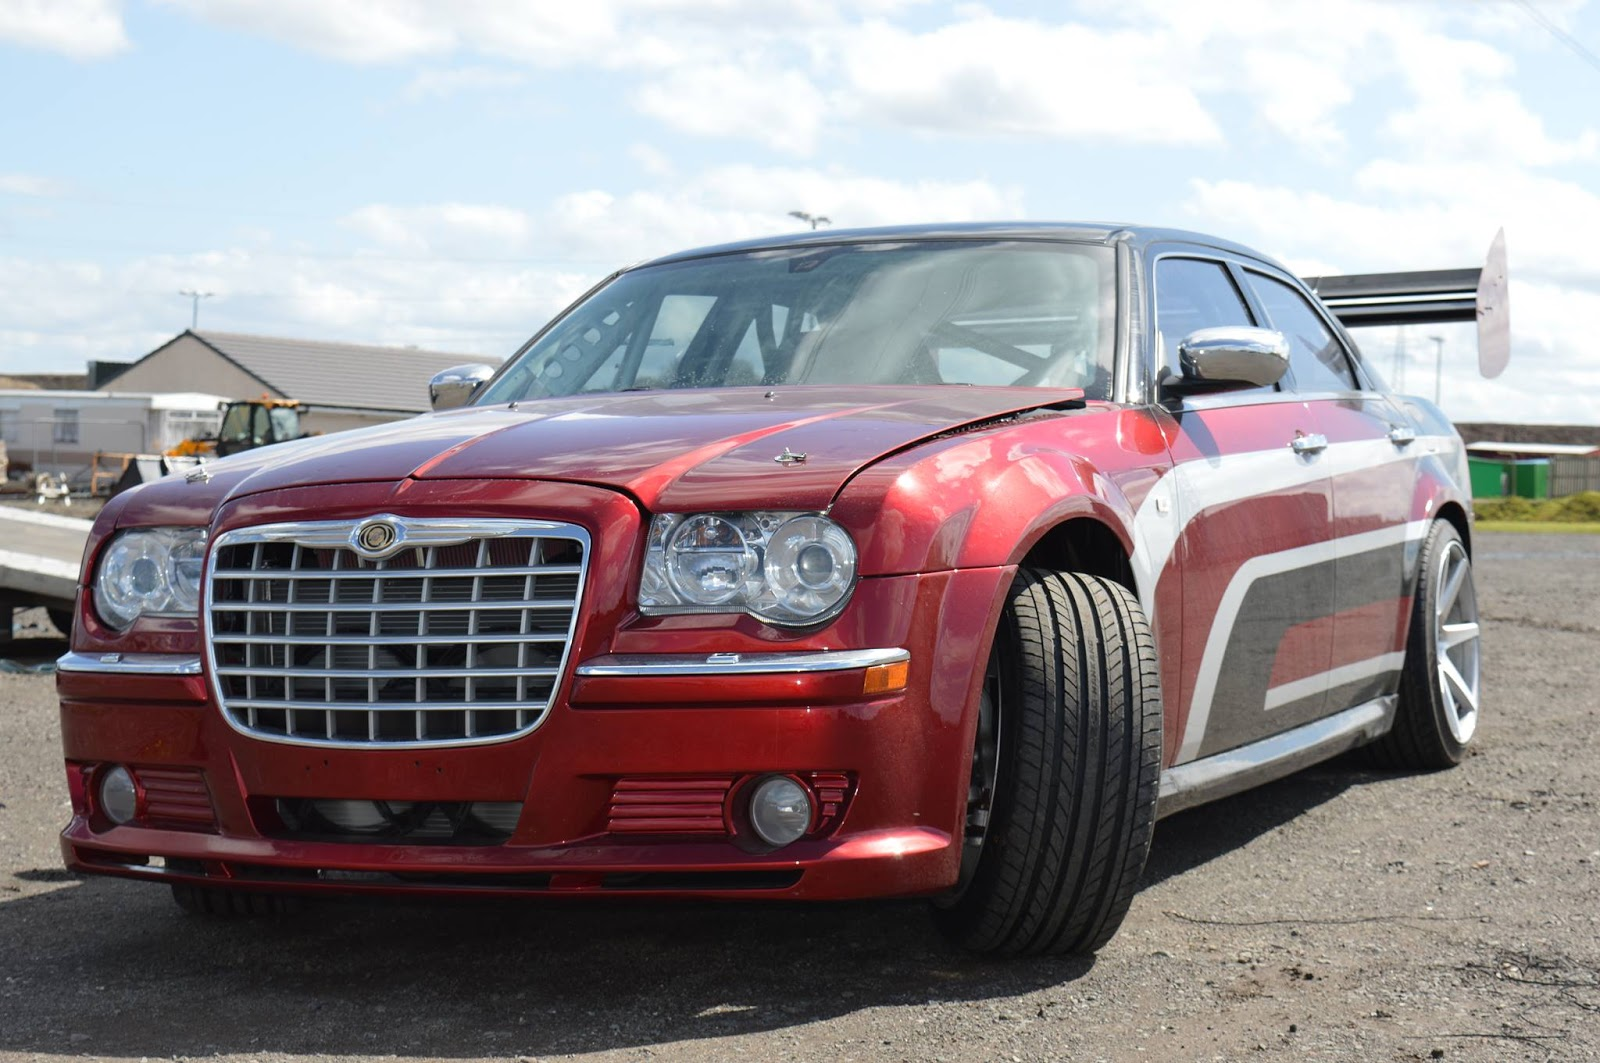 viper powered chrysler  drifter  certifiably nuts wvideo carscoops